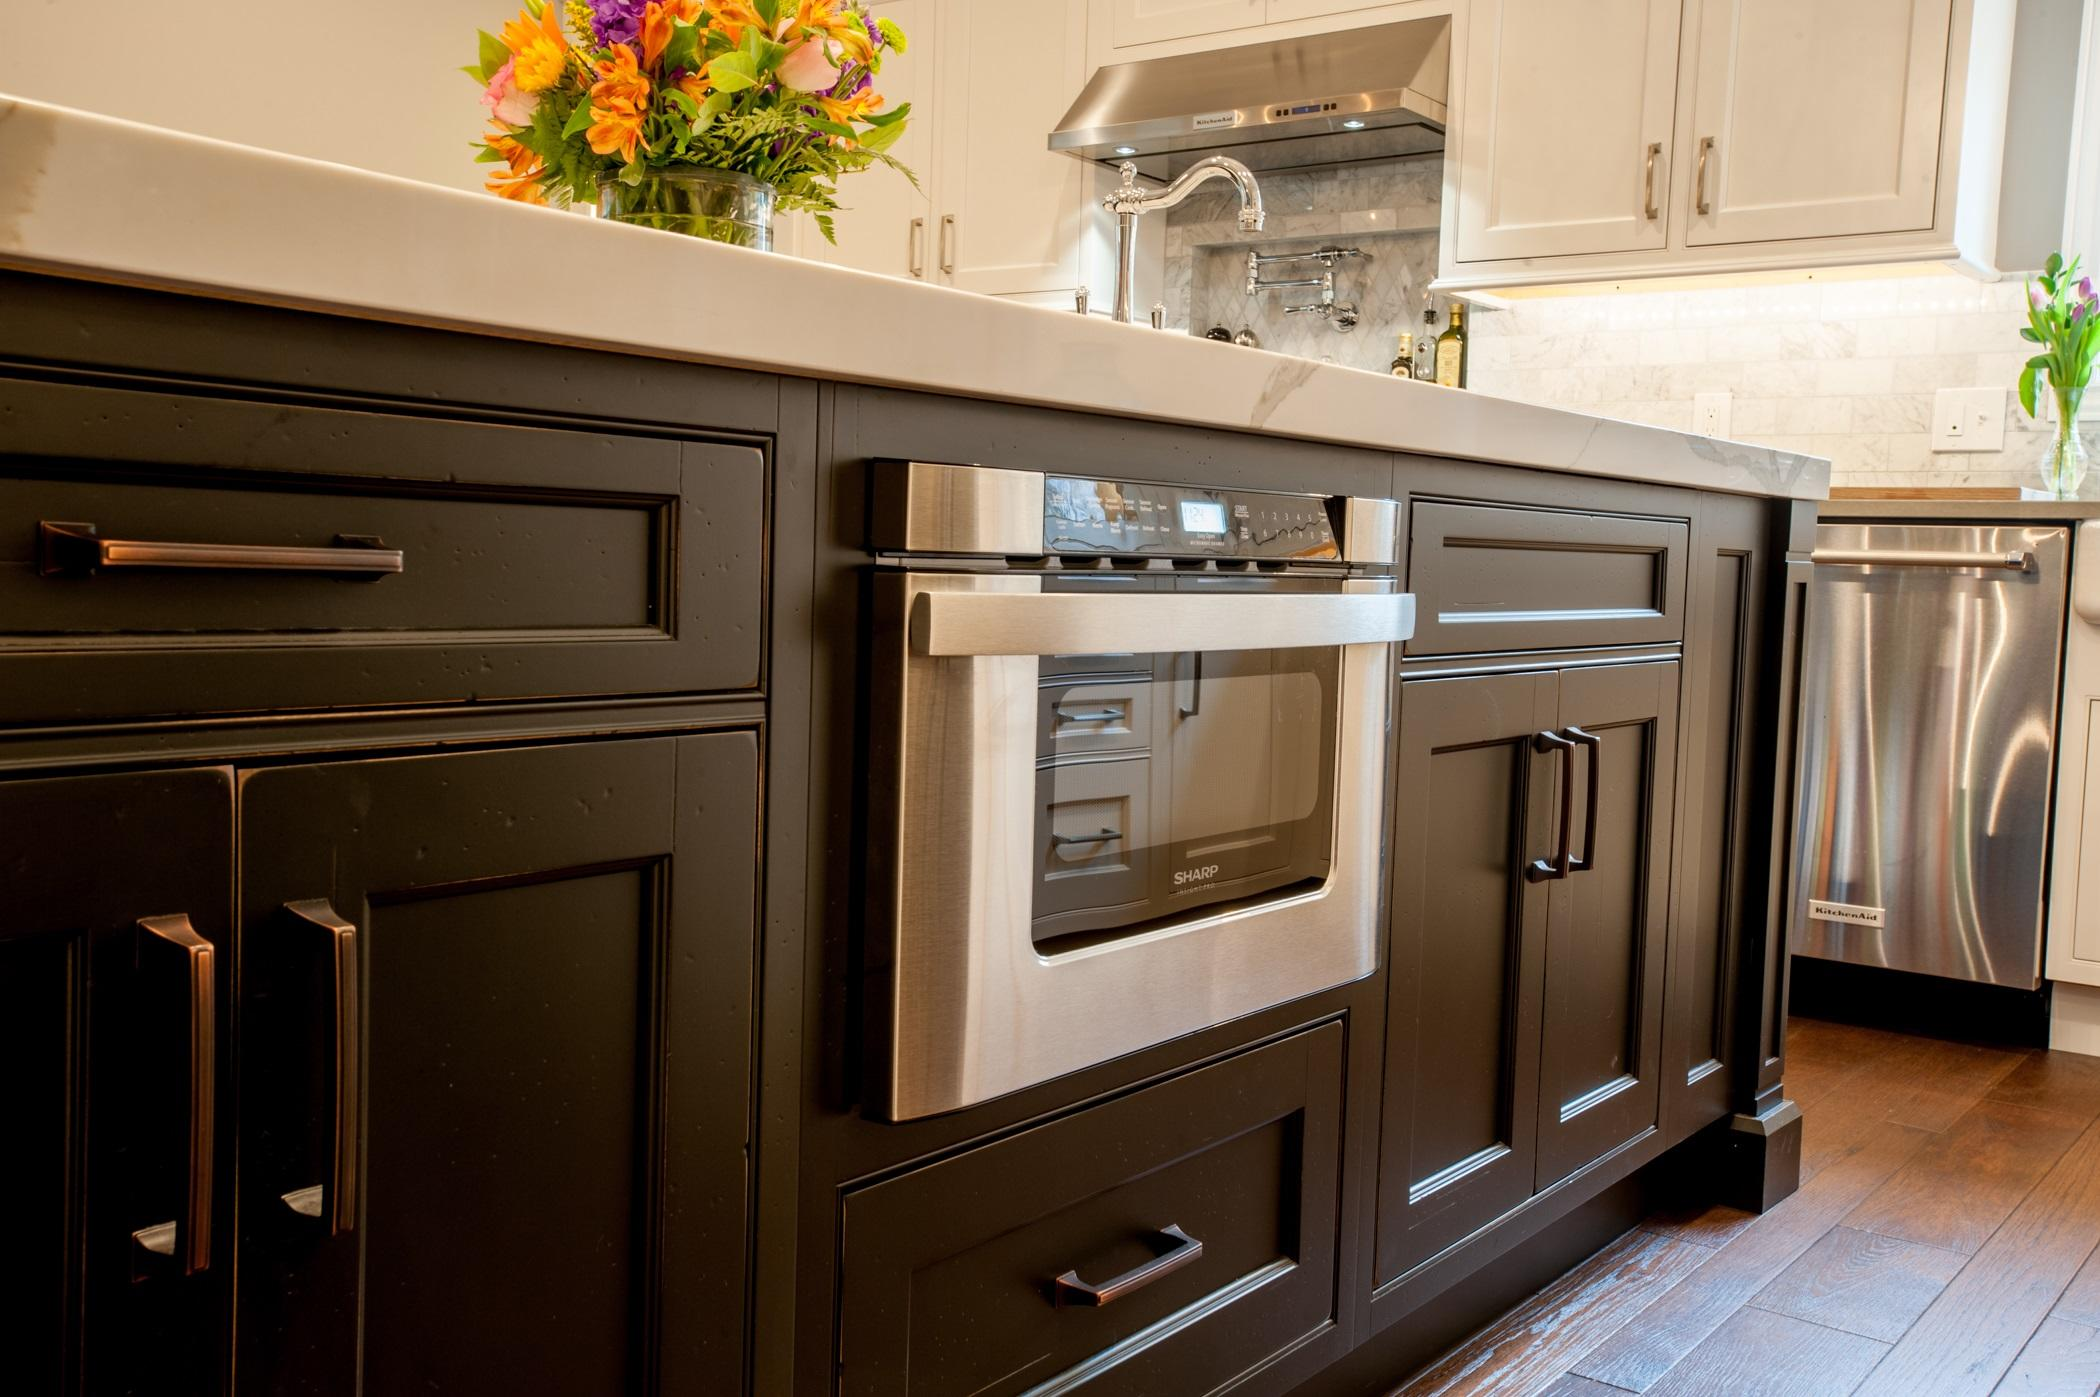 Kitchen design plus toledo ohio oh for Kitchen designs plus